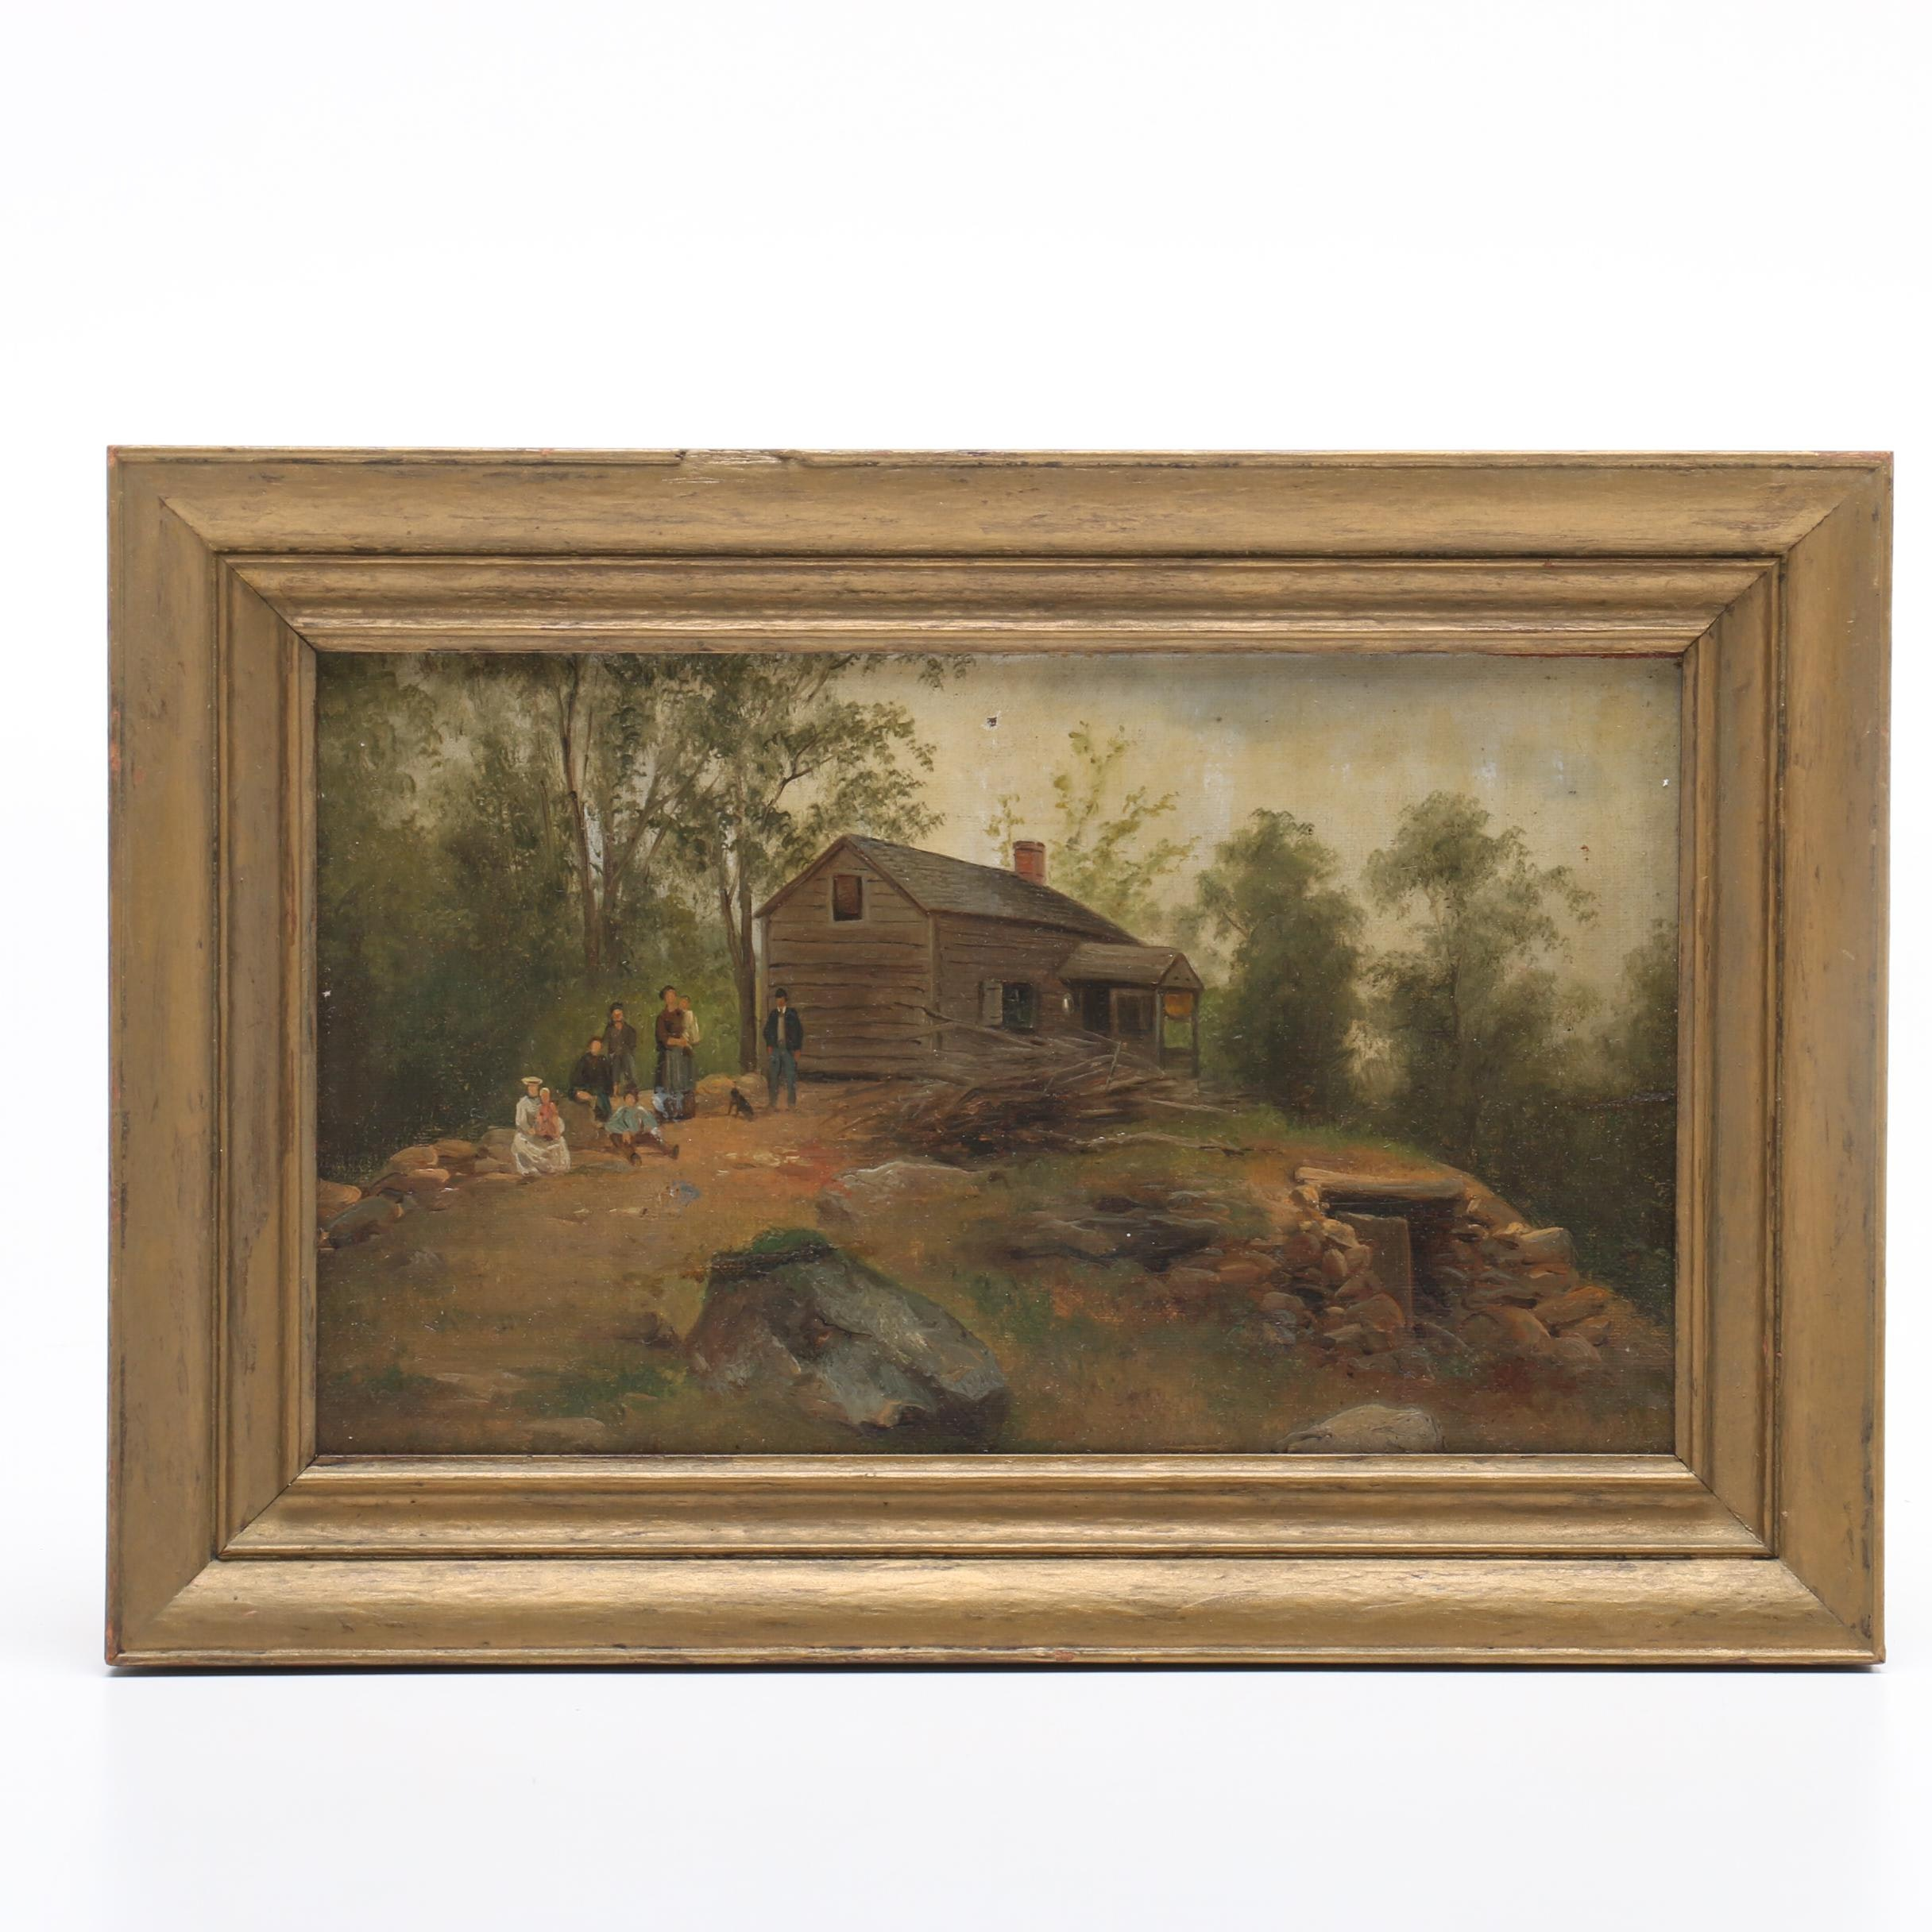 Late 19th-Century Oil Painting of Landscape with Log Cabin and Figures